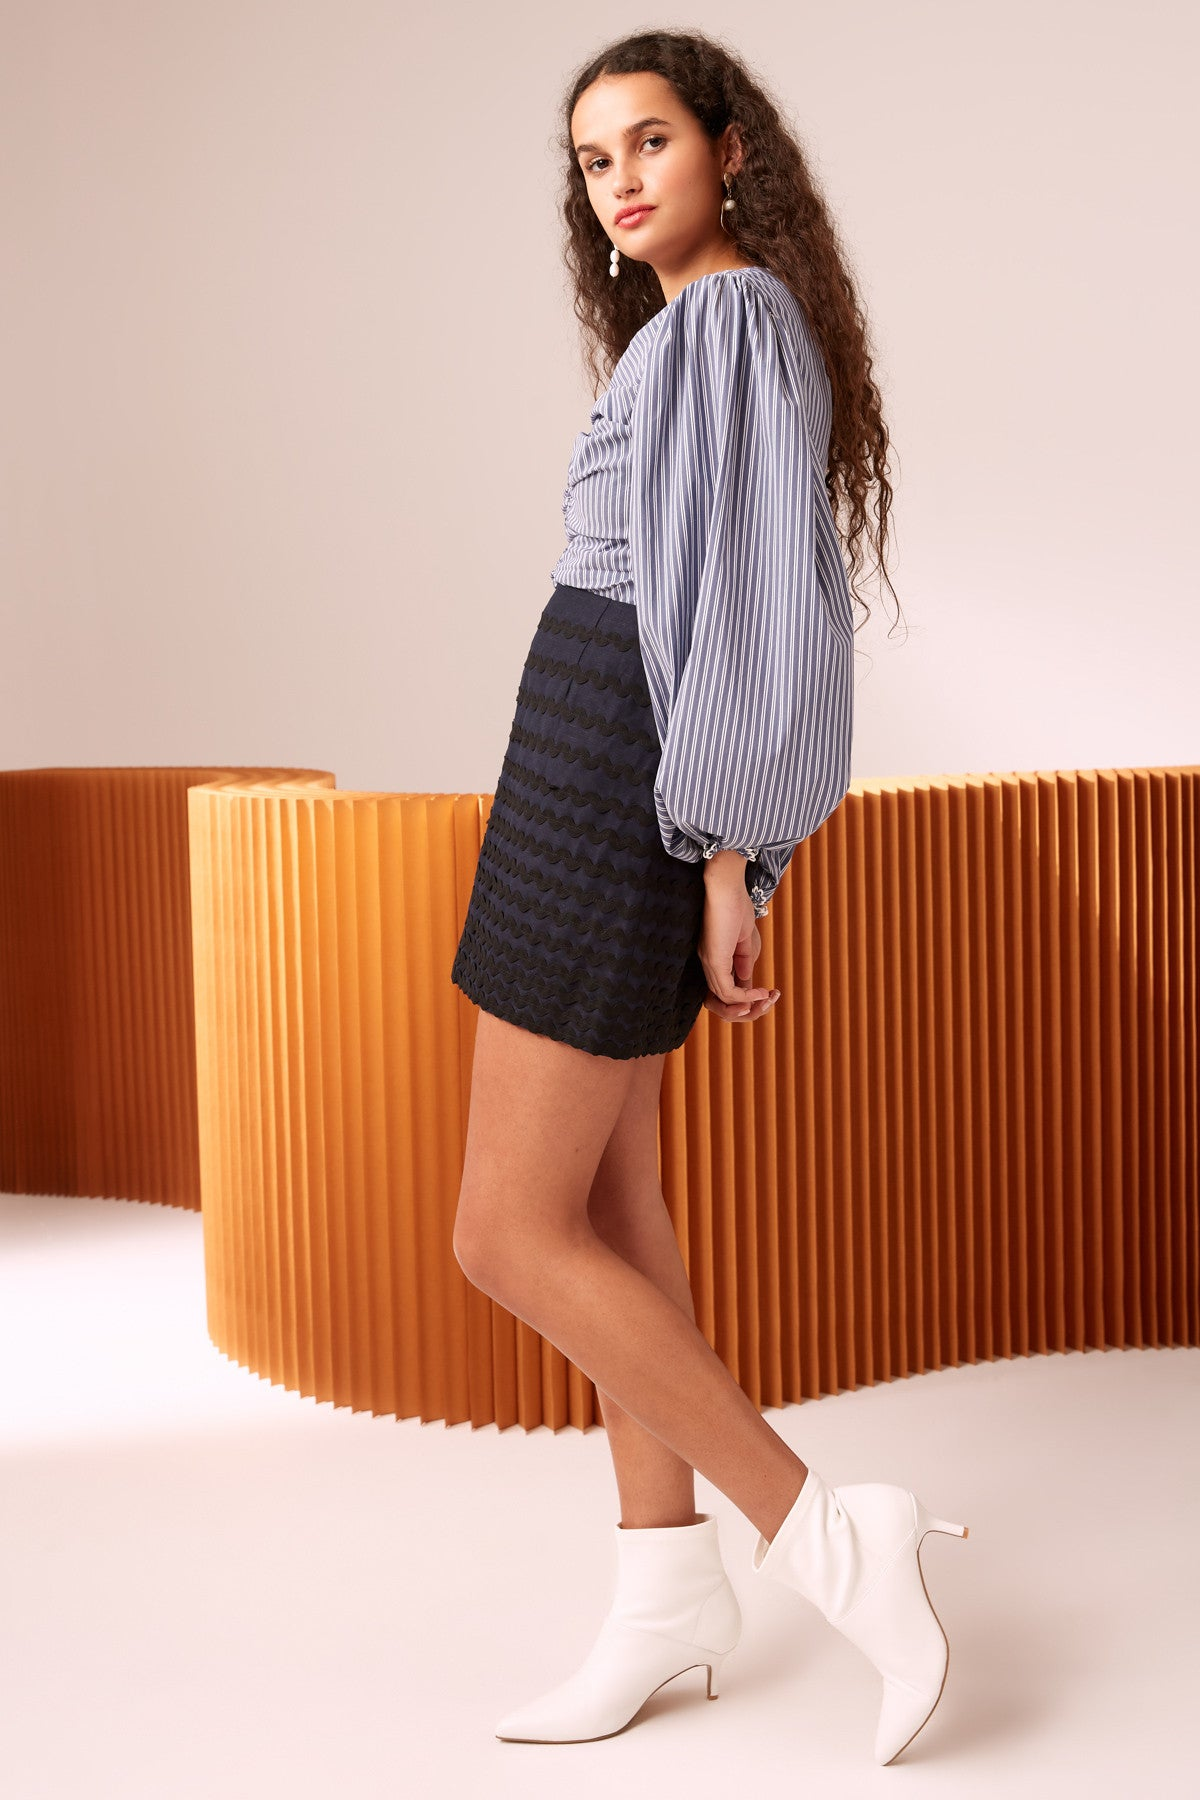 INCISE SKIRT navy